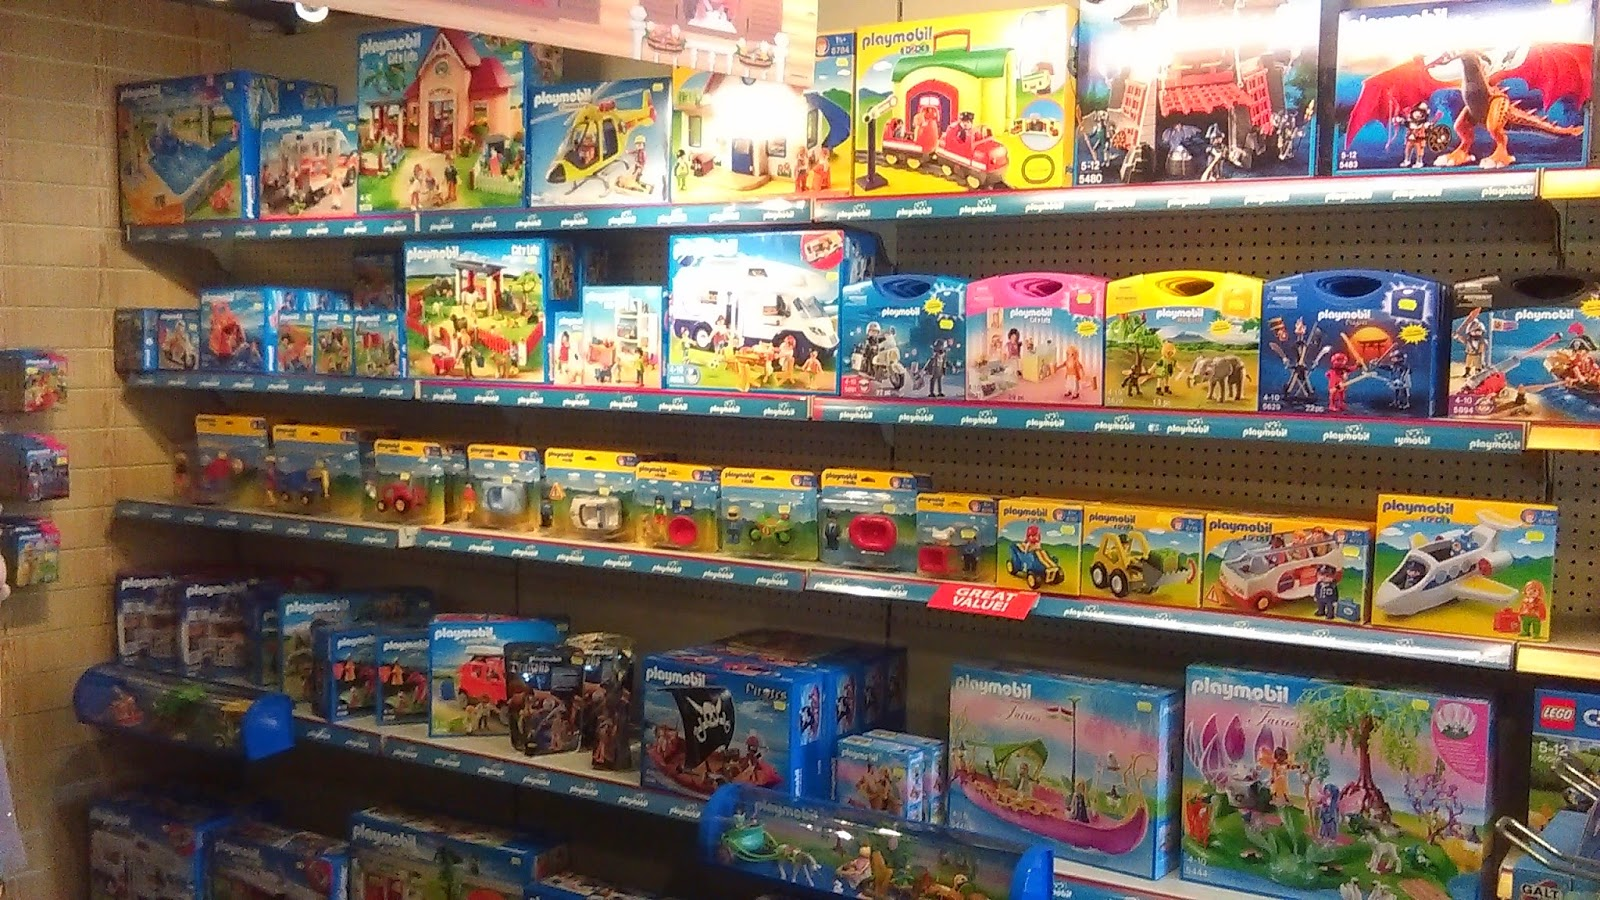 Playmobil Küche Toys R Us Buy Playmobil In The Uk Independent Toy Shops